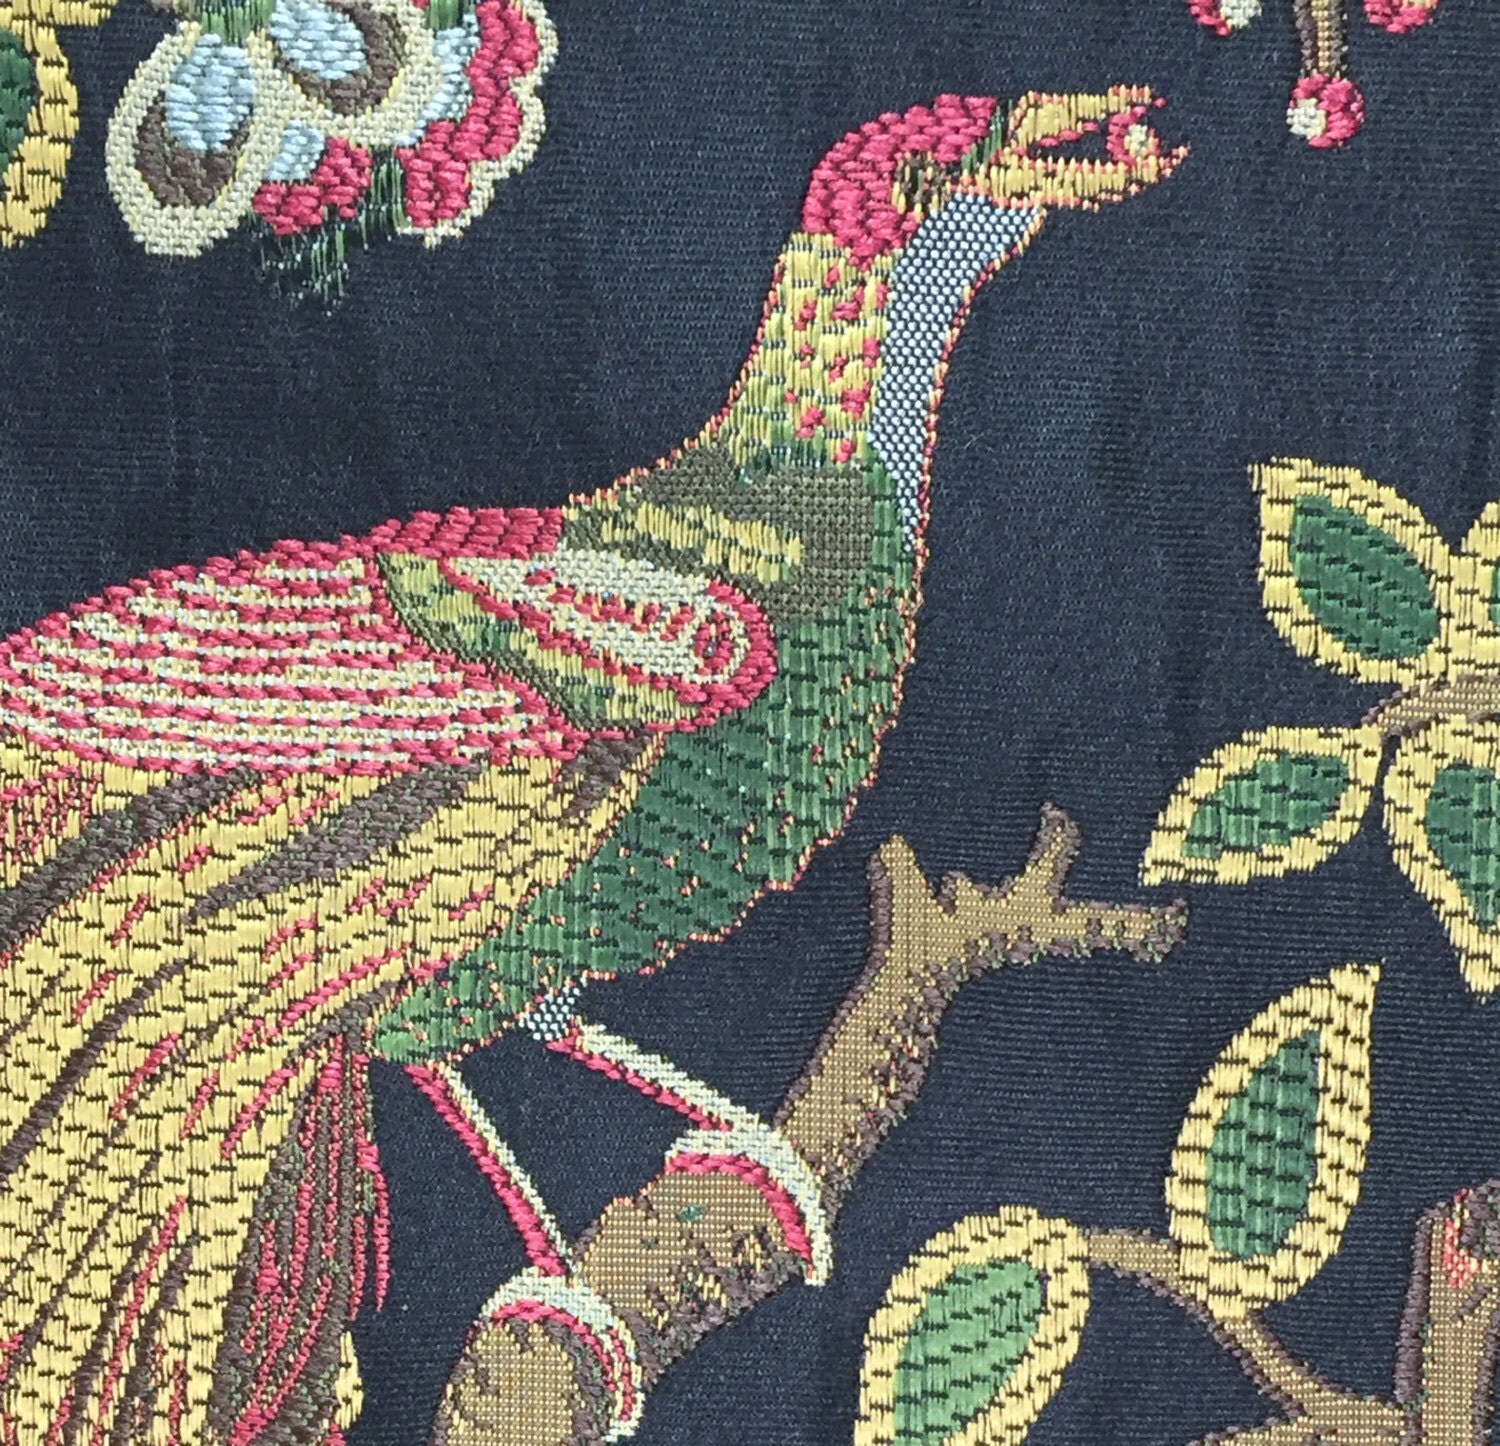 Exotic bird fabric embroidery pattern samples